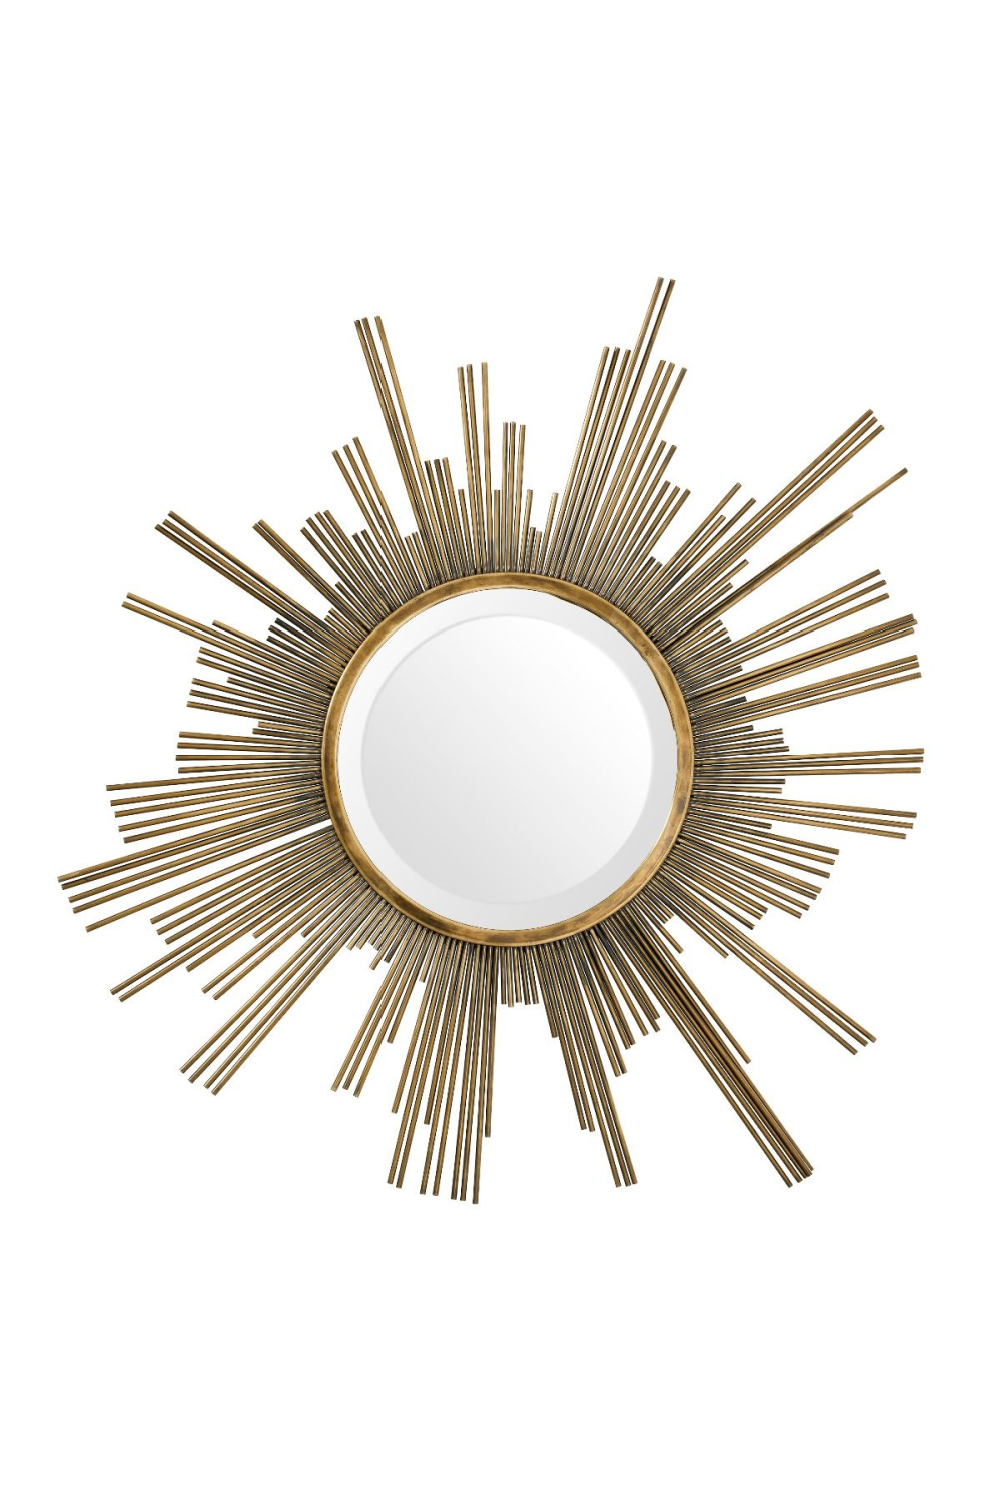 Sun Shaped Brass Mirror | Eichholtz Nikki